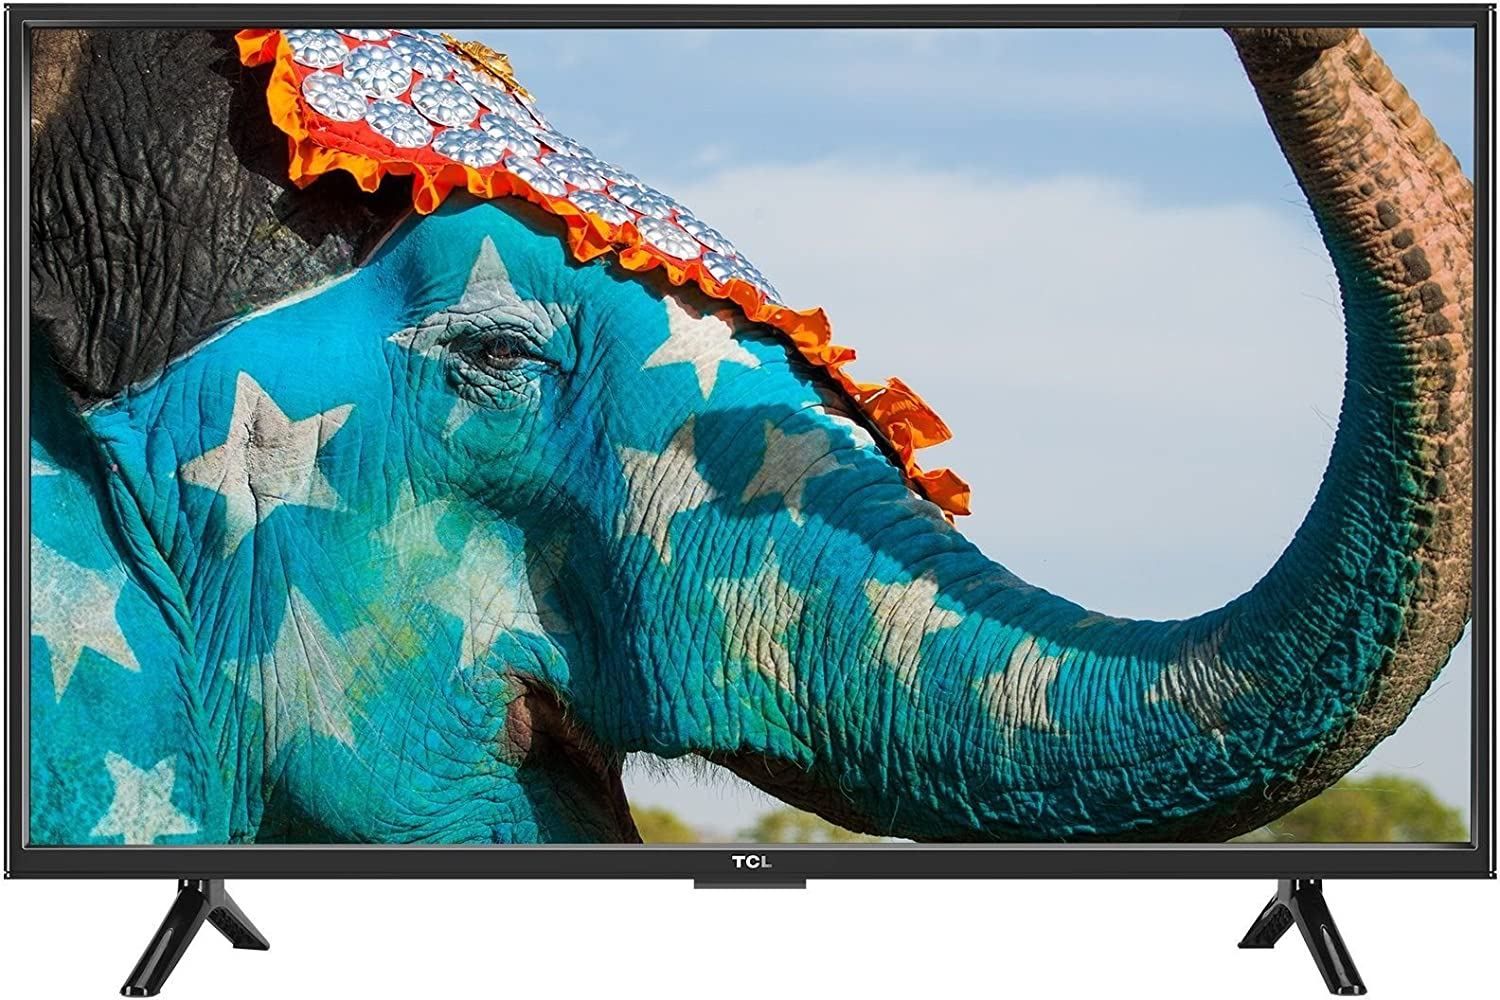 Tcl 40 Inches Hd Ready Led Tv Price Buy Tcl 40 Inches Hd Ready Led